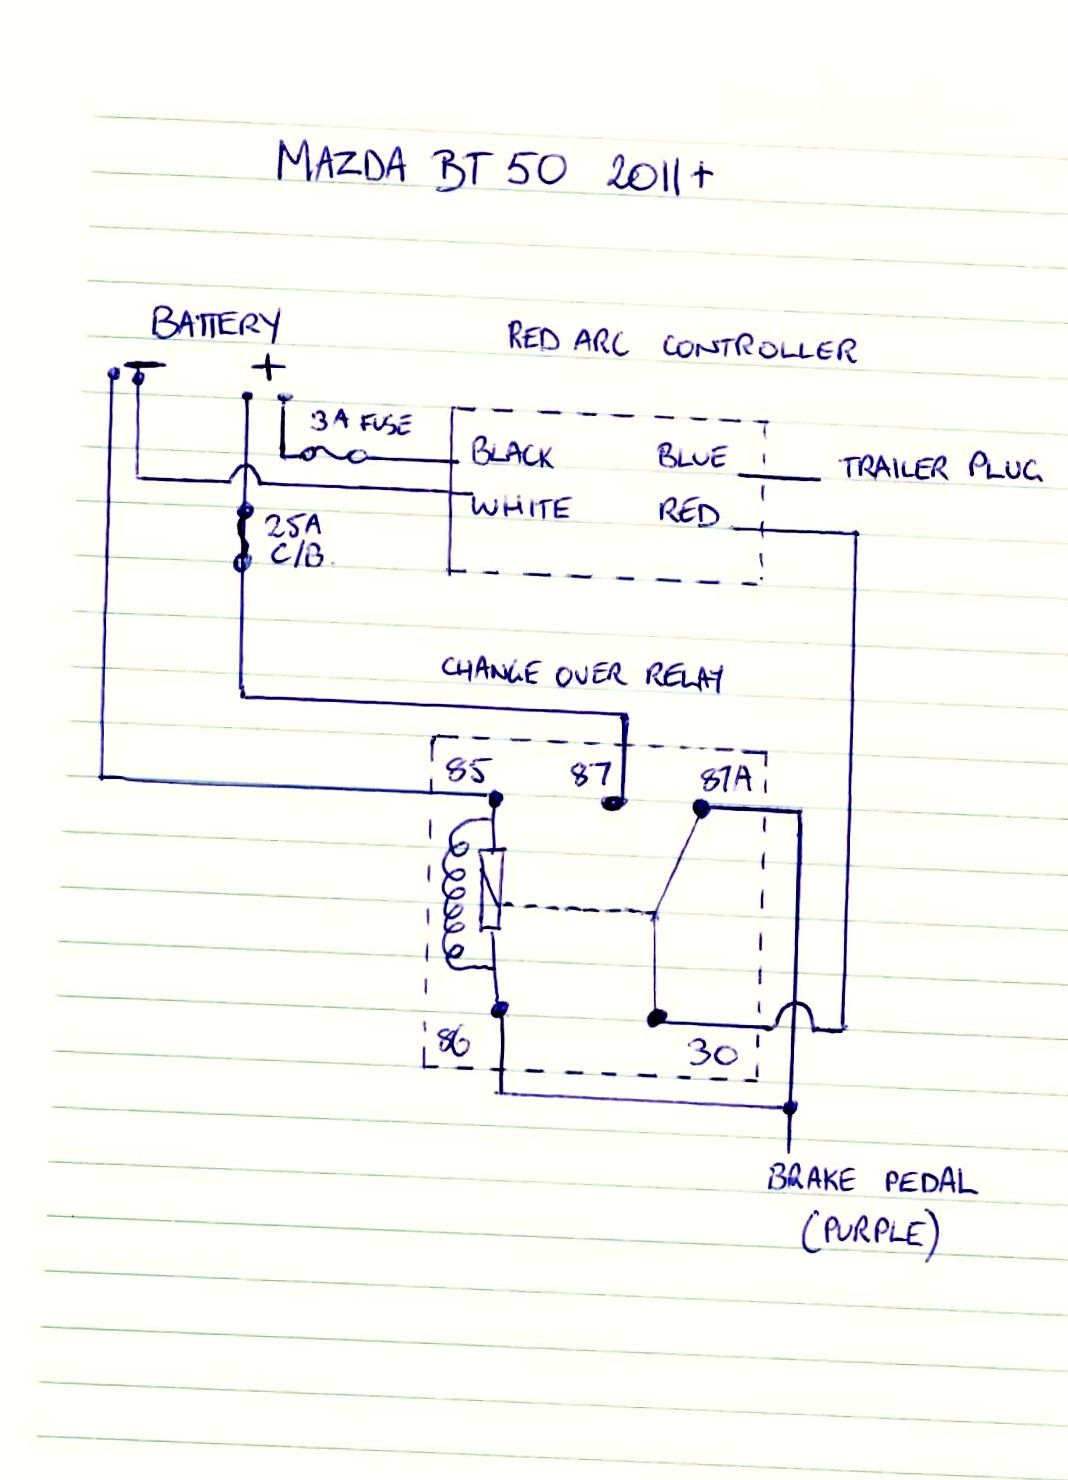 bt 50 brake controller wiring diagram ute 4x4 project bt 50 brake controller wiring diagram